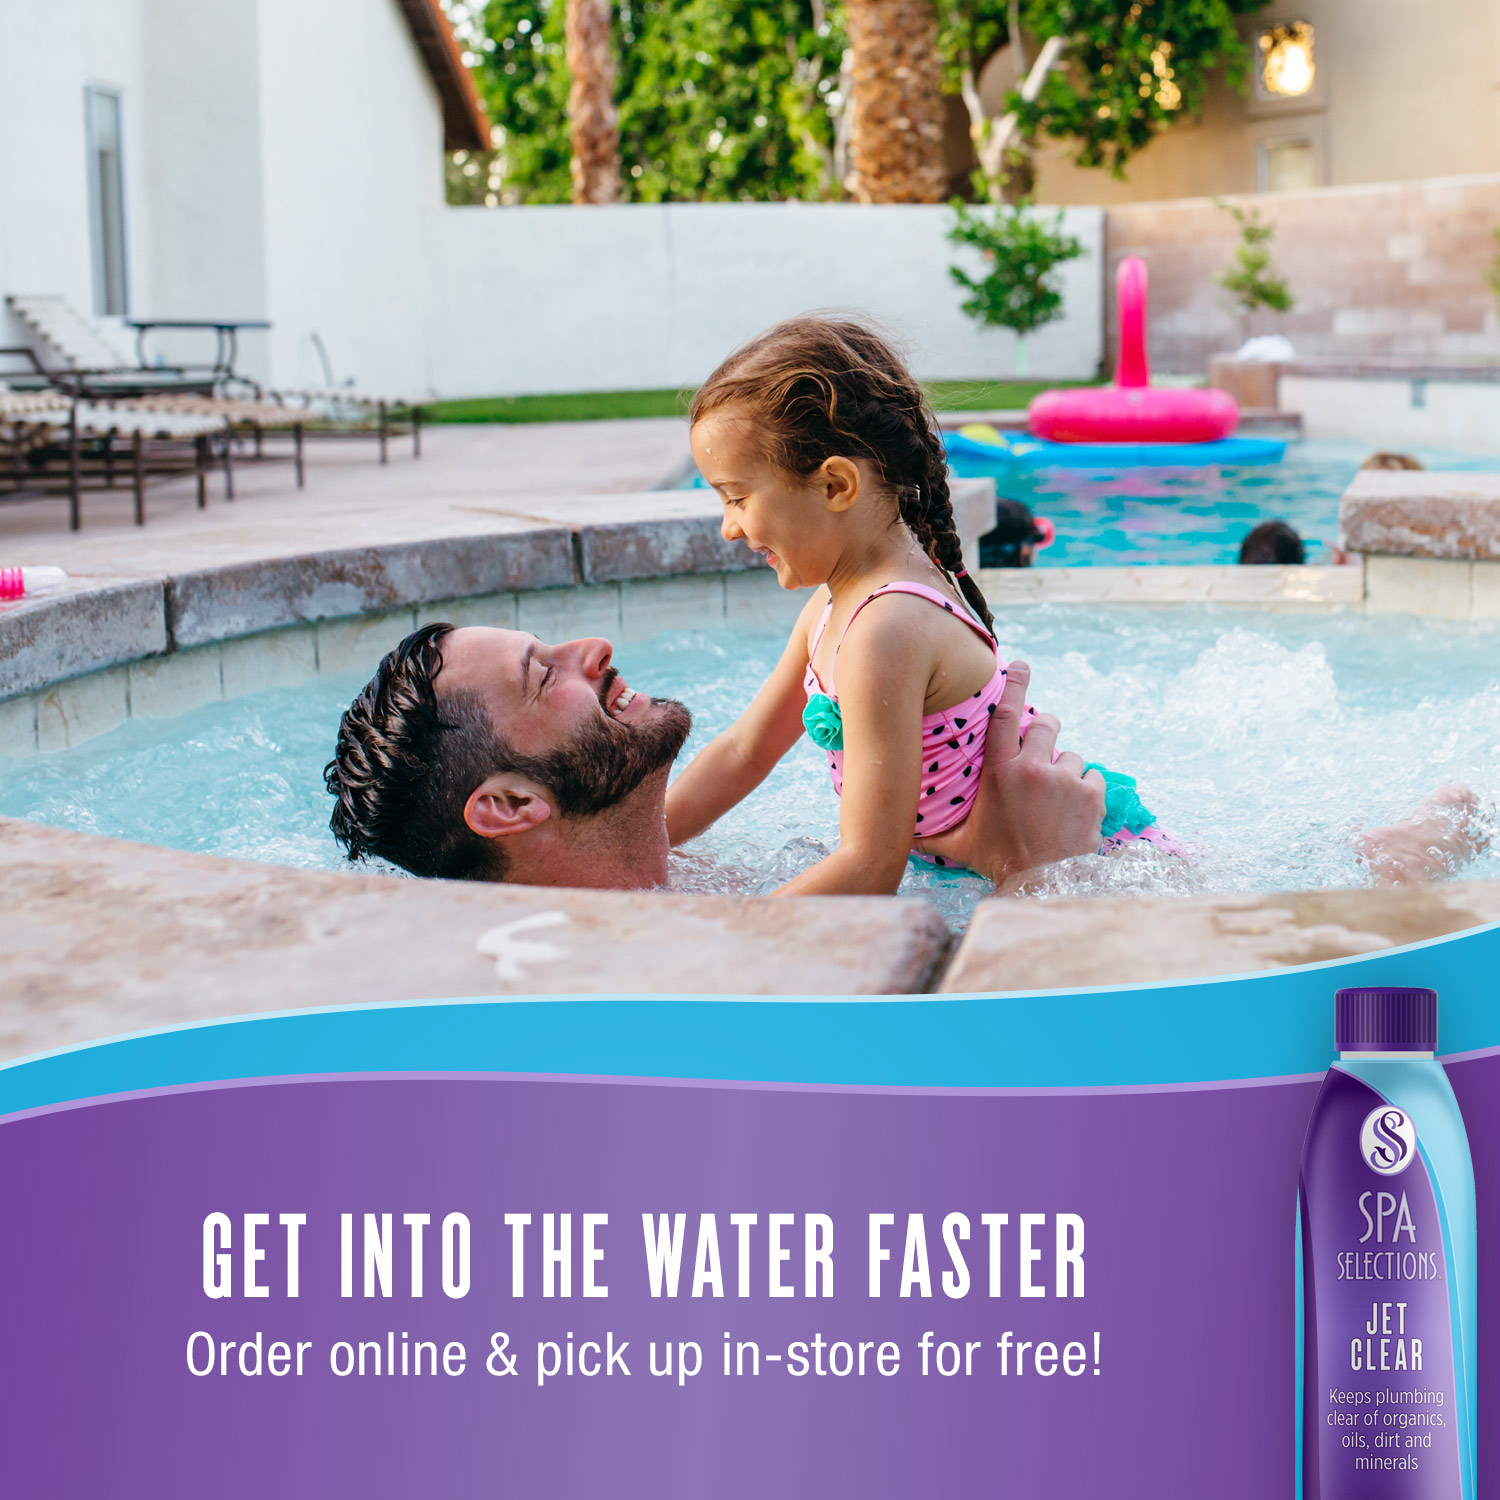 Father and daughter enjoying outdoor hot tub. Get into the water faster with Spa Selections Jet Clear, order online and pick up in-store for free!